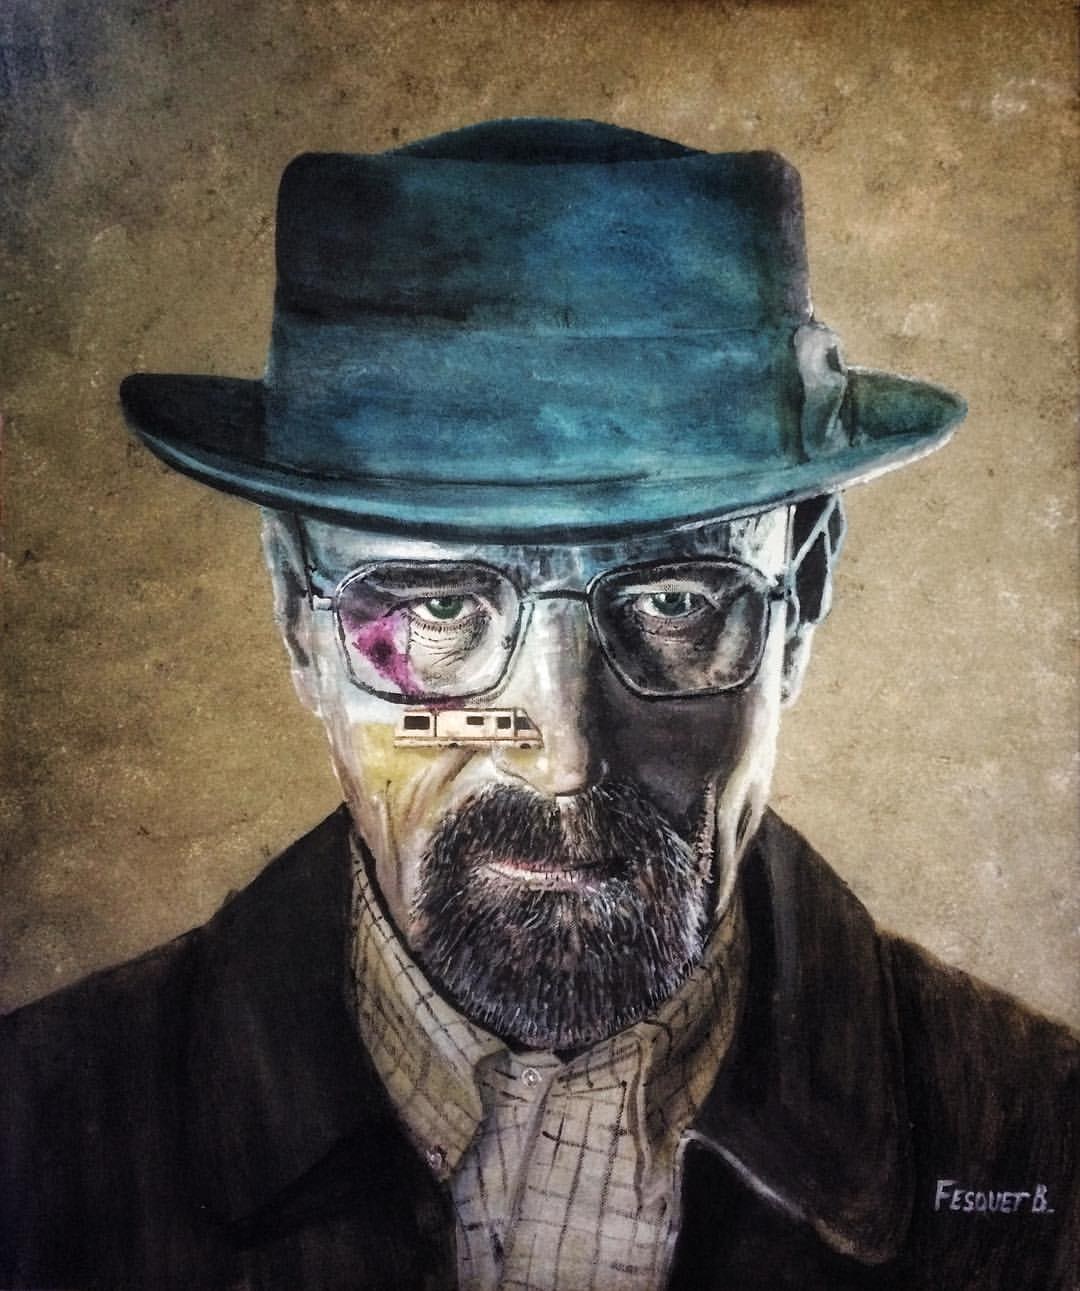 3_-_Walter_White_(Heisenberg)_-_Breaking_Bad._Acrylique_+_Aquarelle,_carton_entoilé,_55x46cm